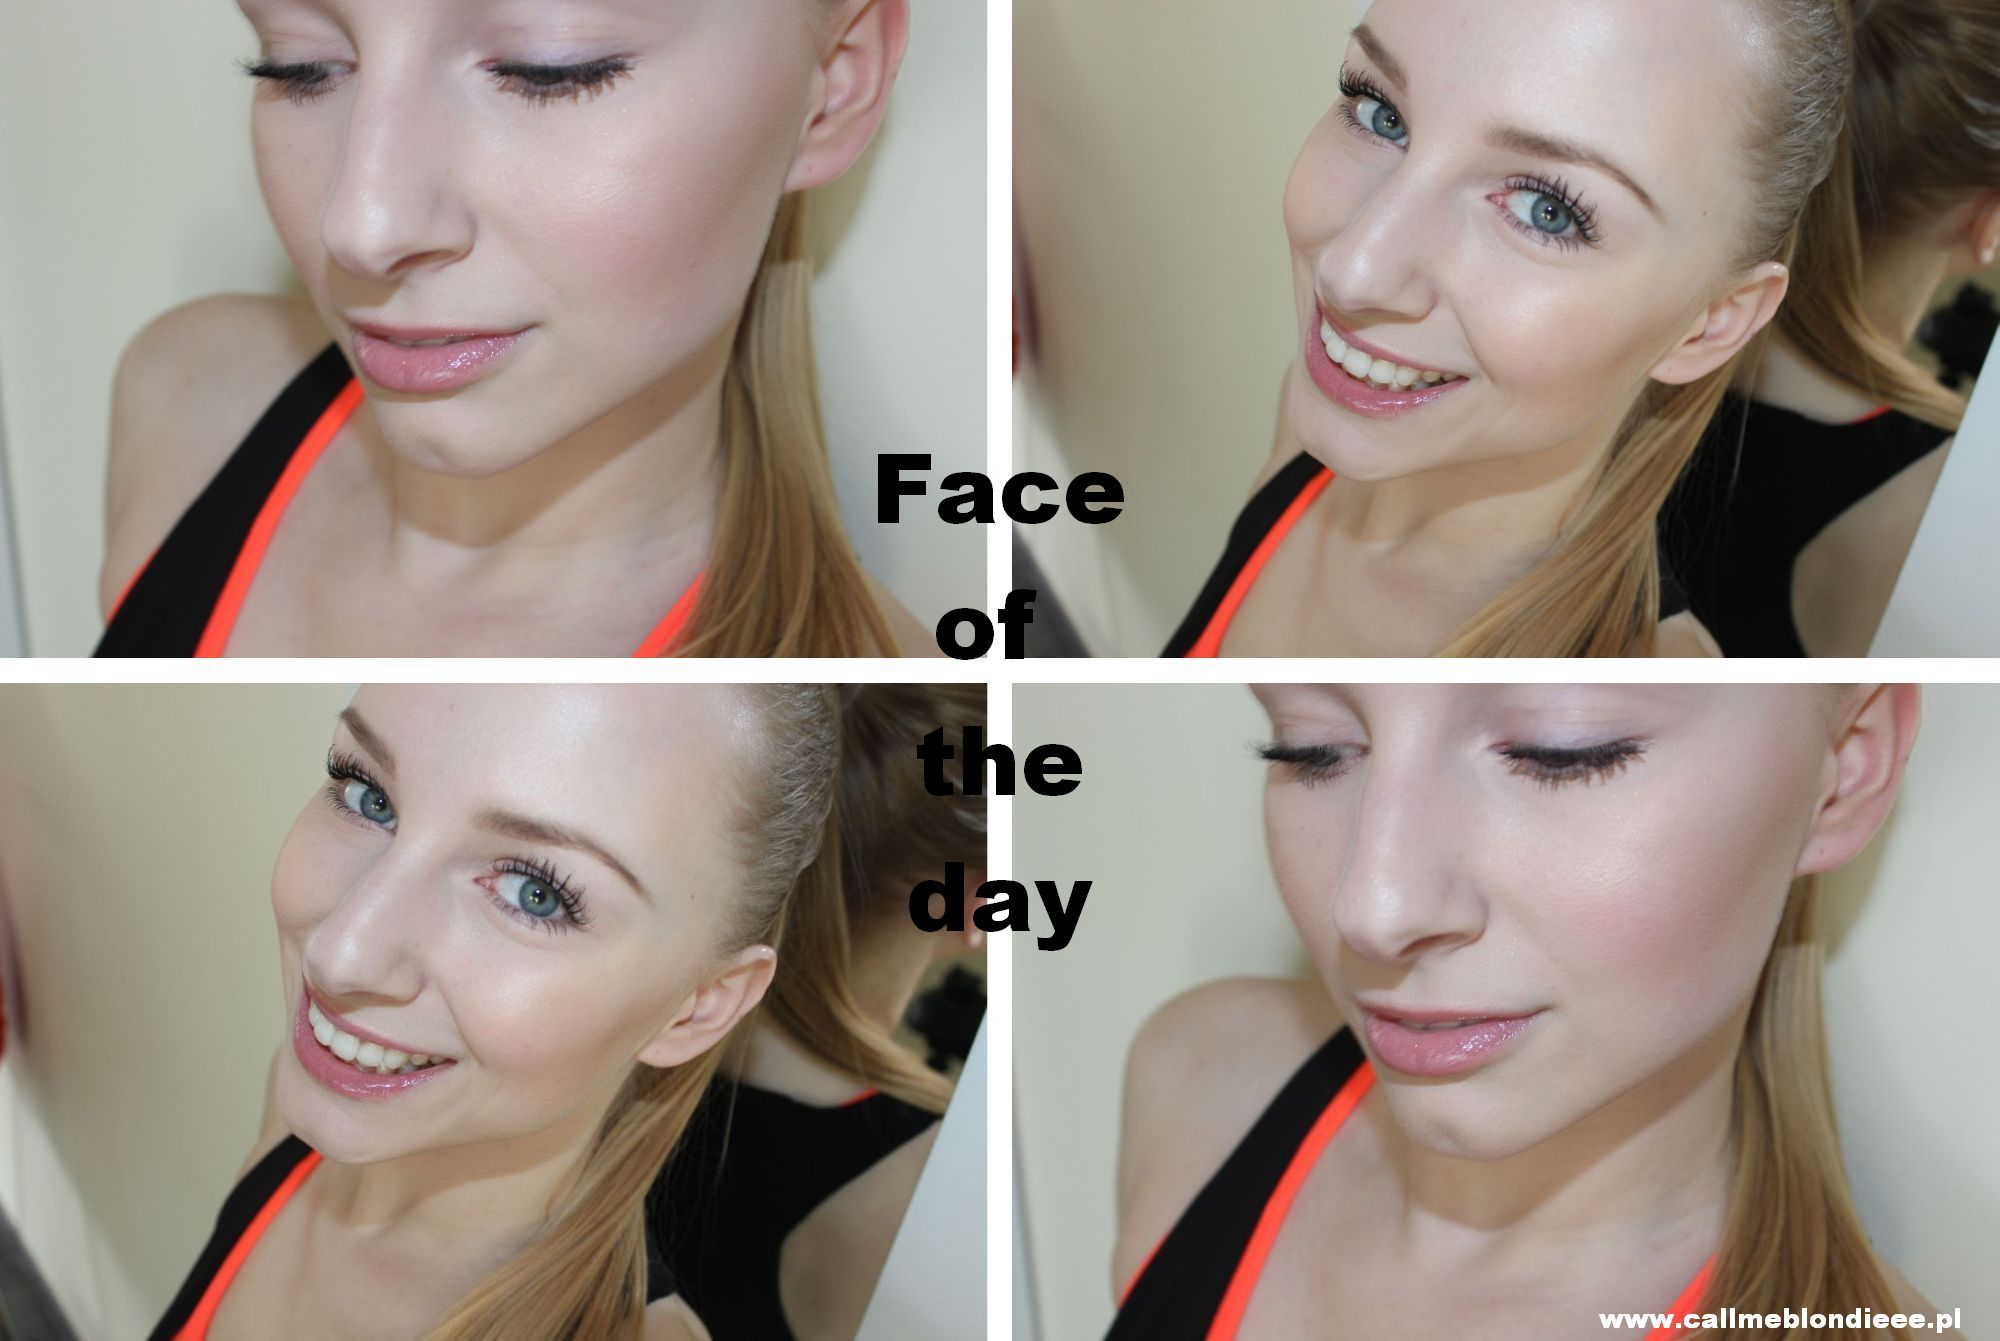 Face of the day 1 www.callmeblondieee.pl